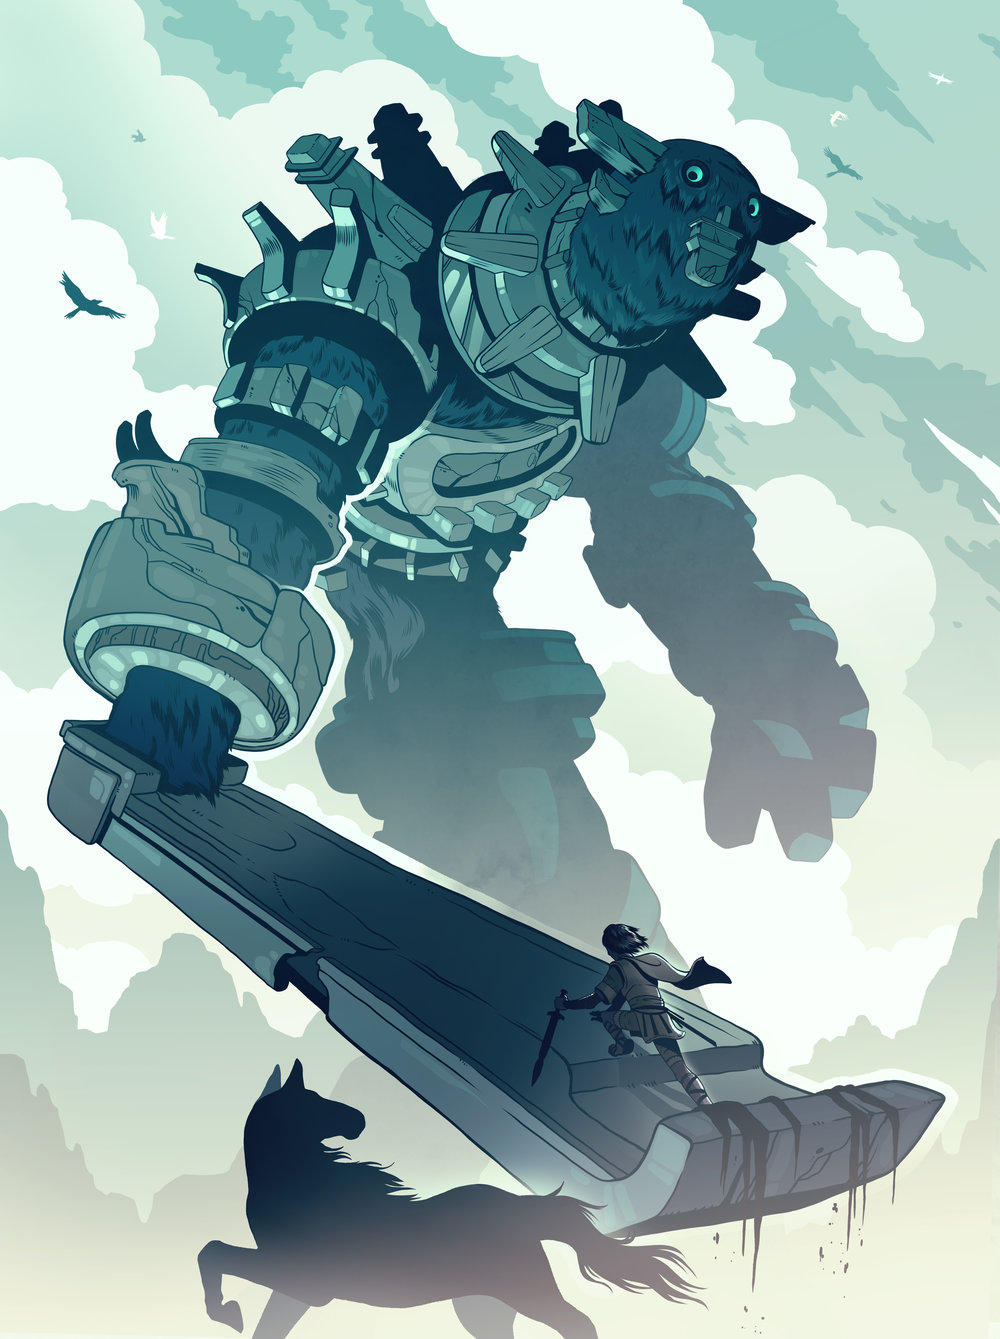 Shadow of the Colossus Edited Flat.jpg